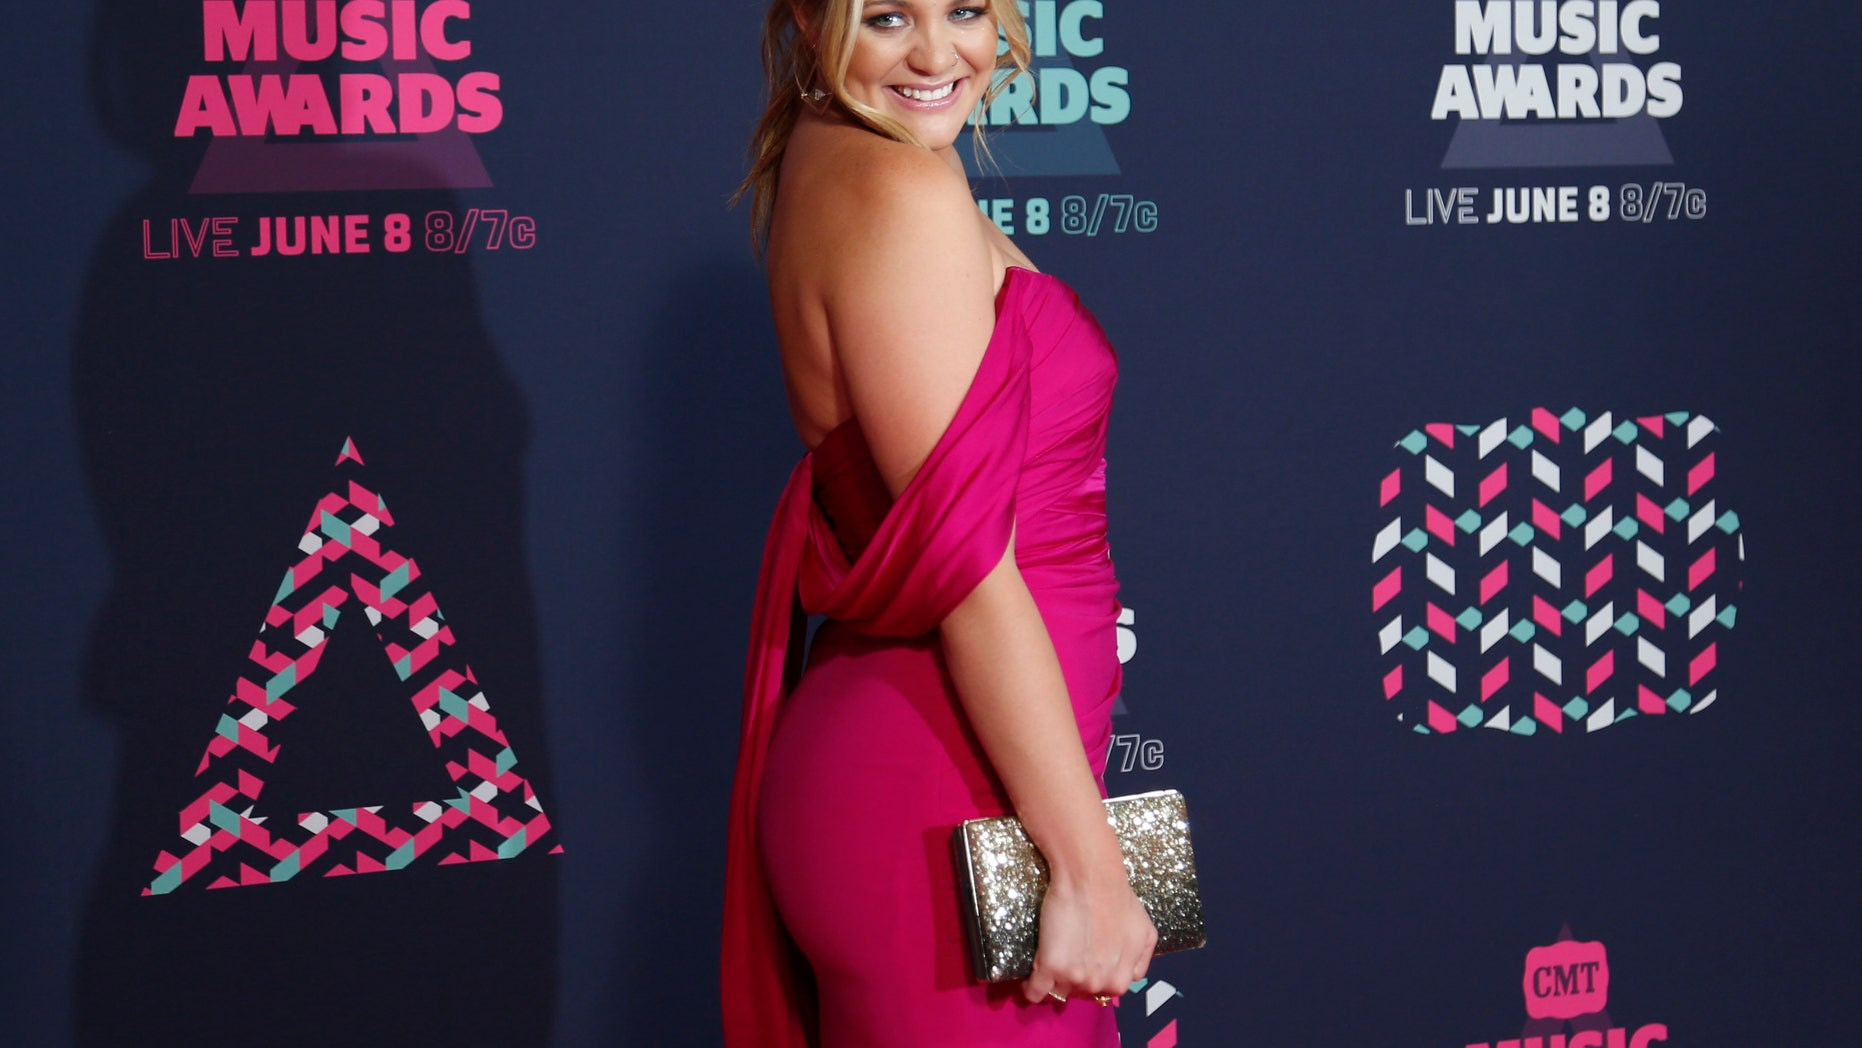 Singer Lauren Alaina arrives at the 2016 CMT Music Awards in Nashville, Tennessee, U.S. June 8, 2016.